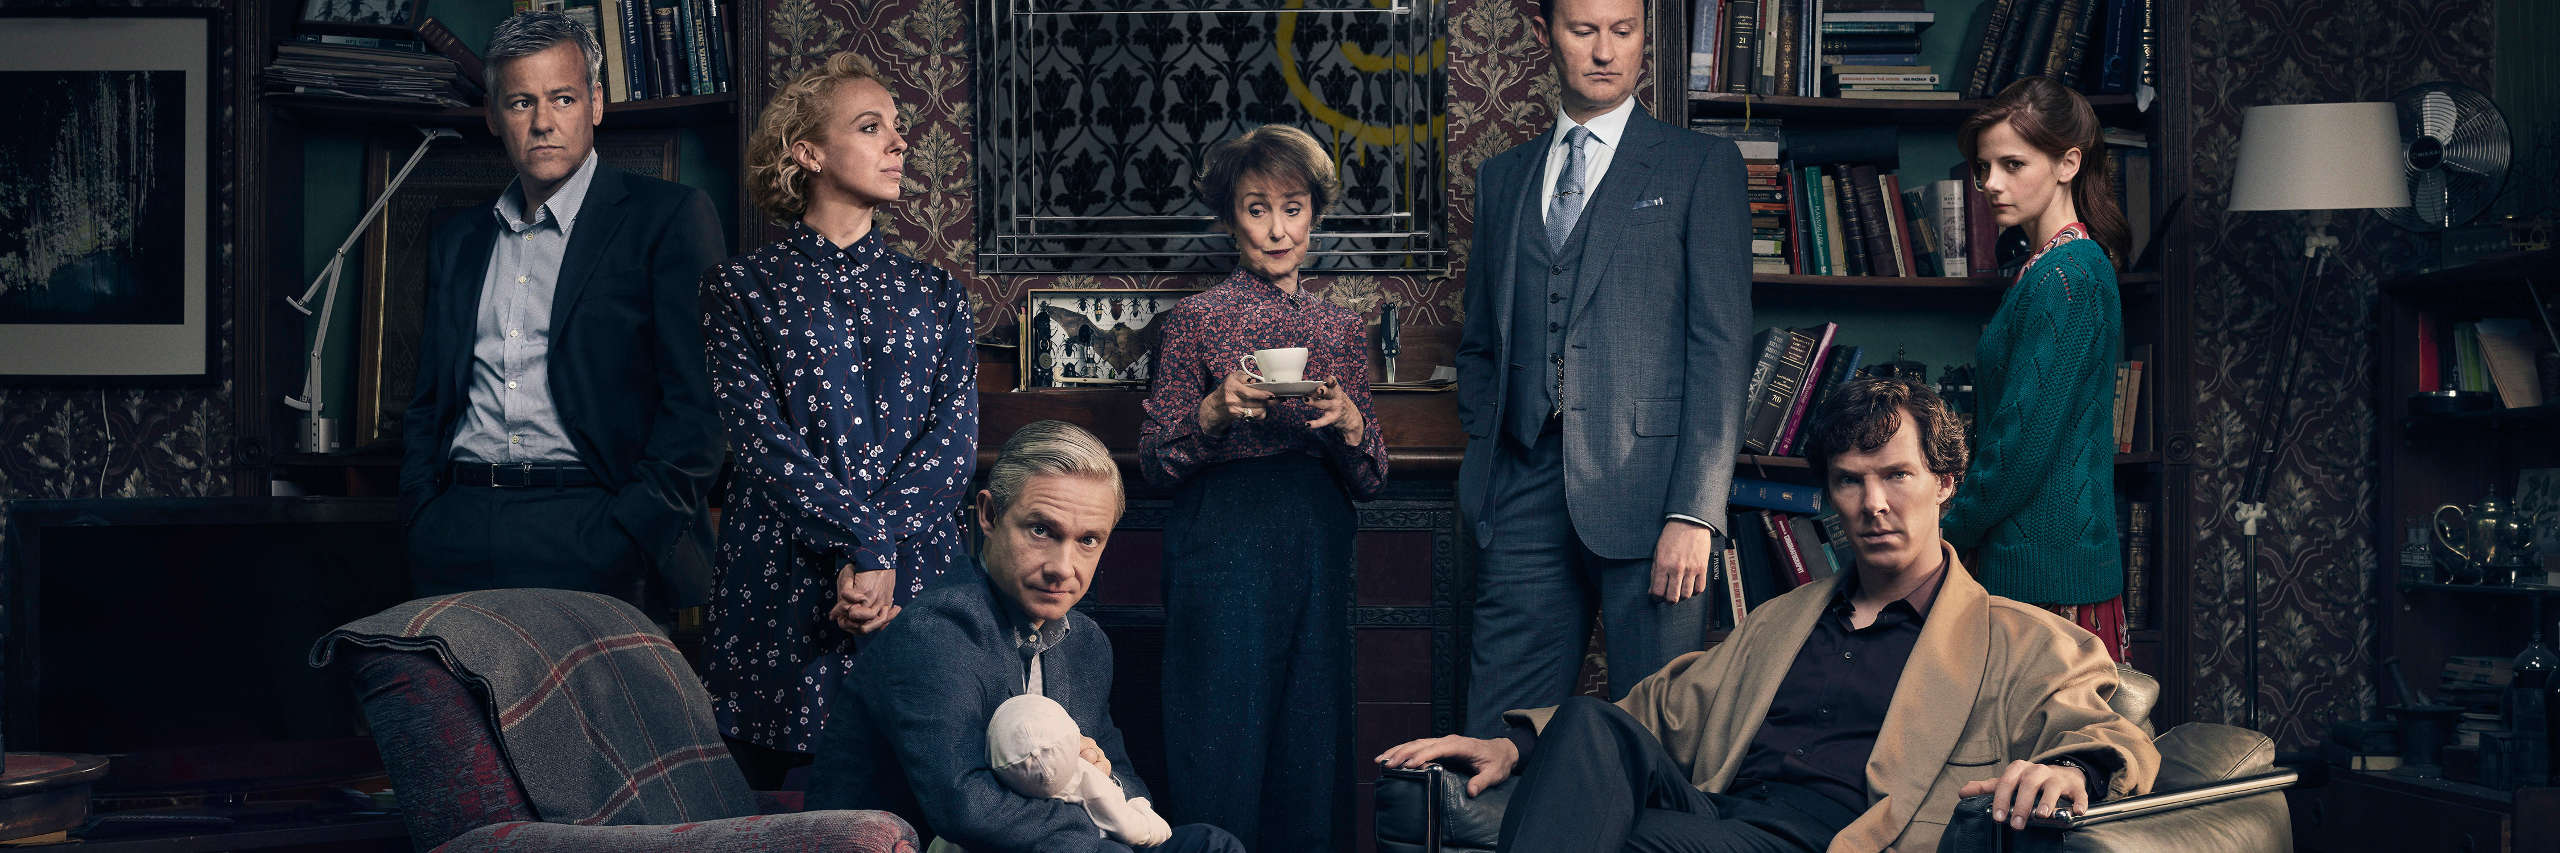 Cast of The Six Thachers, in front of Sherlock's fireplace